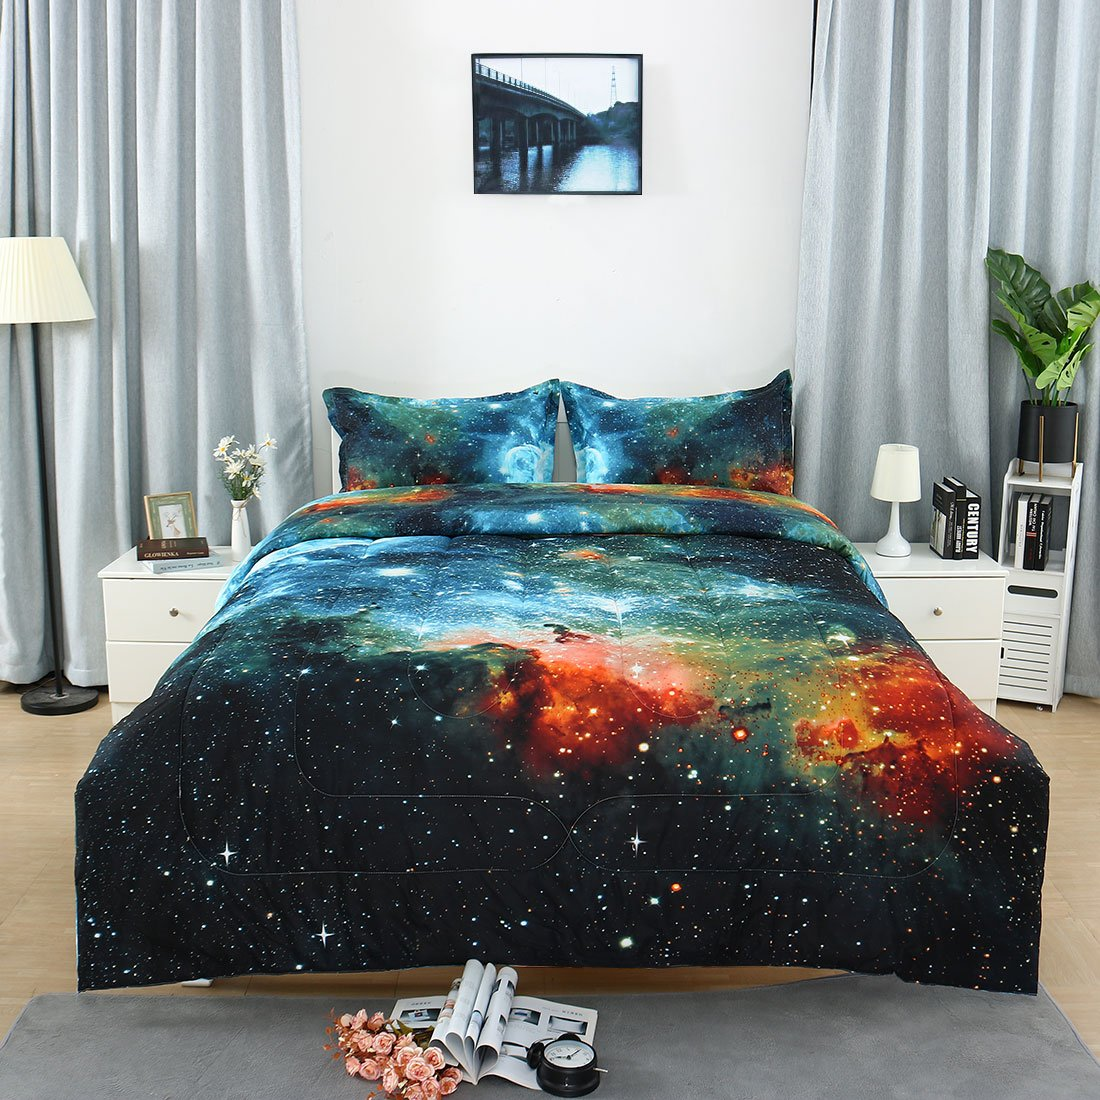 3-Piece Galaxies Blue Comforter Sets - 3D Printed Space Themed - All-Season Down Alternative Quilted Duvet - Reversible Design